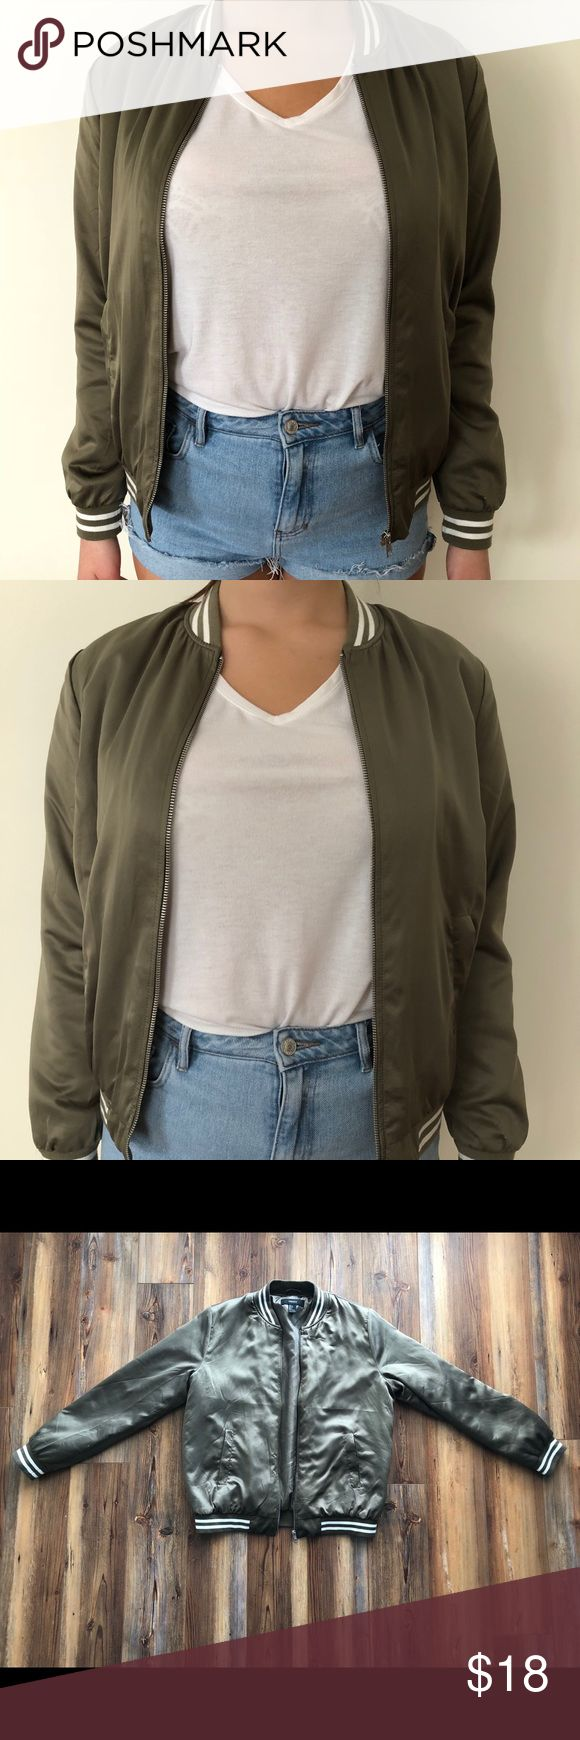 NWOT Forever 21 army green bomber jacket Boutique Army